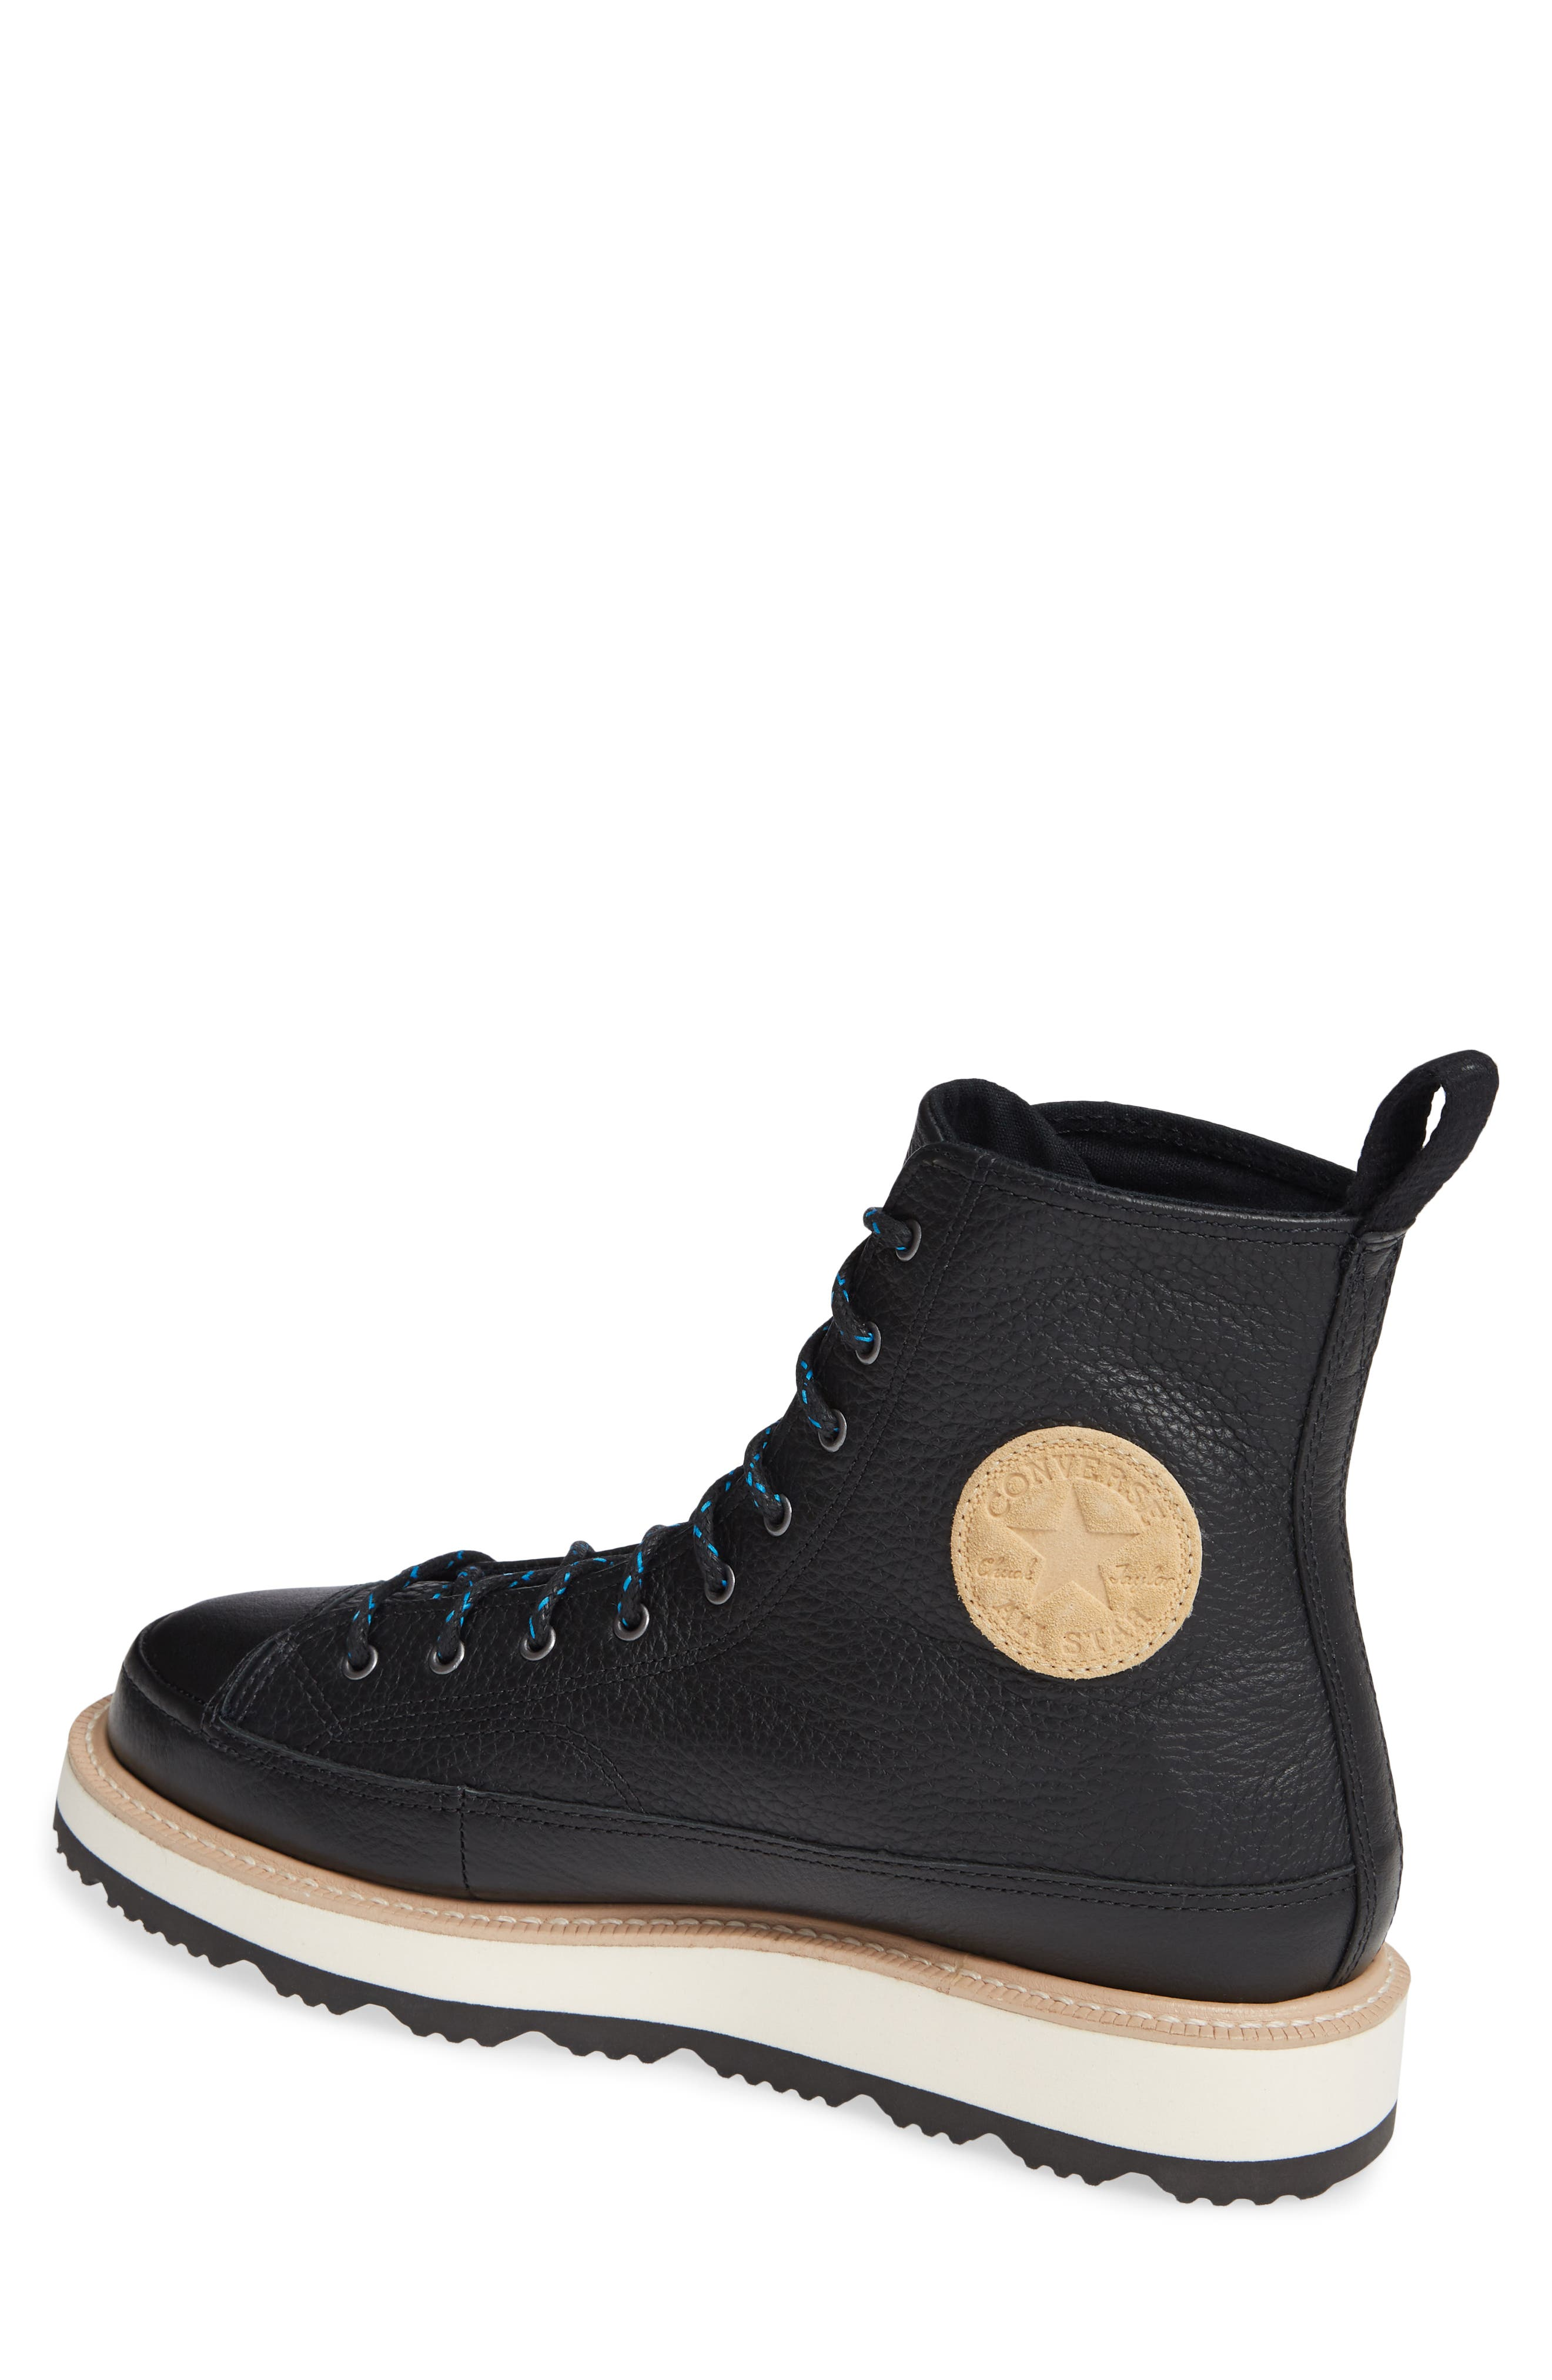 Chuck Taylor<sup>®</sup> Crafted Boot,                             Alternate thumbnail 2, color,                             BLACK/ LIGHT FAWN/ BLACK